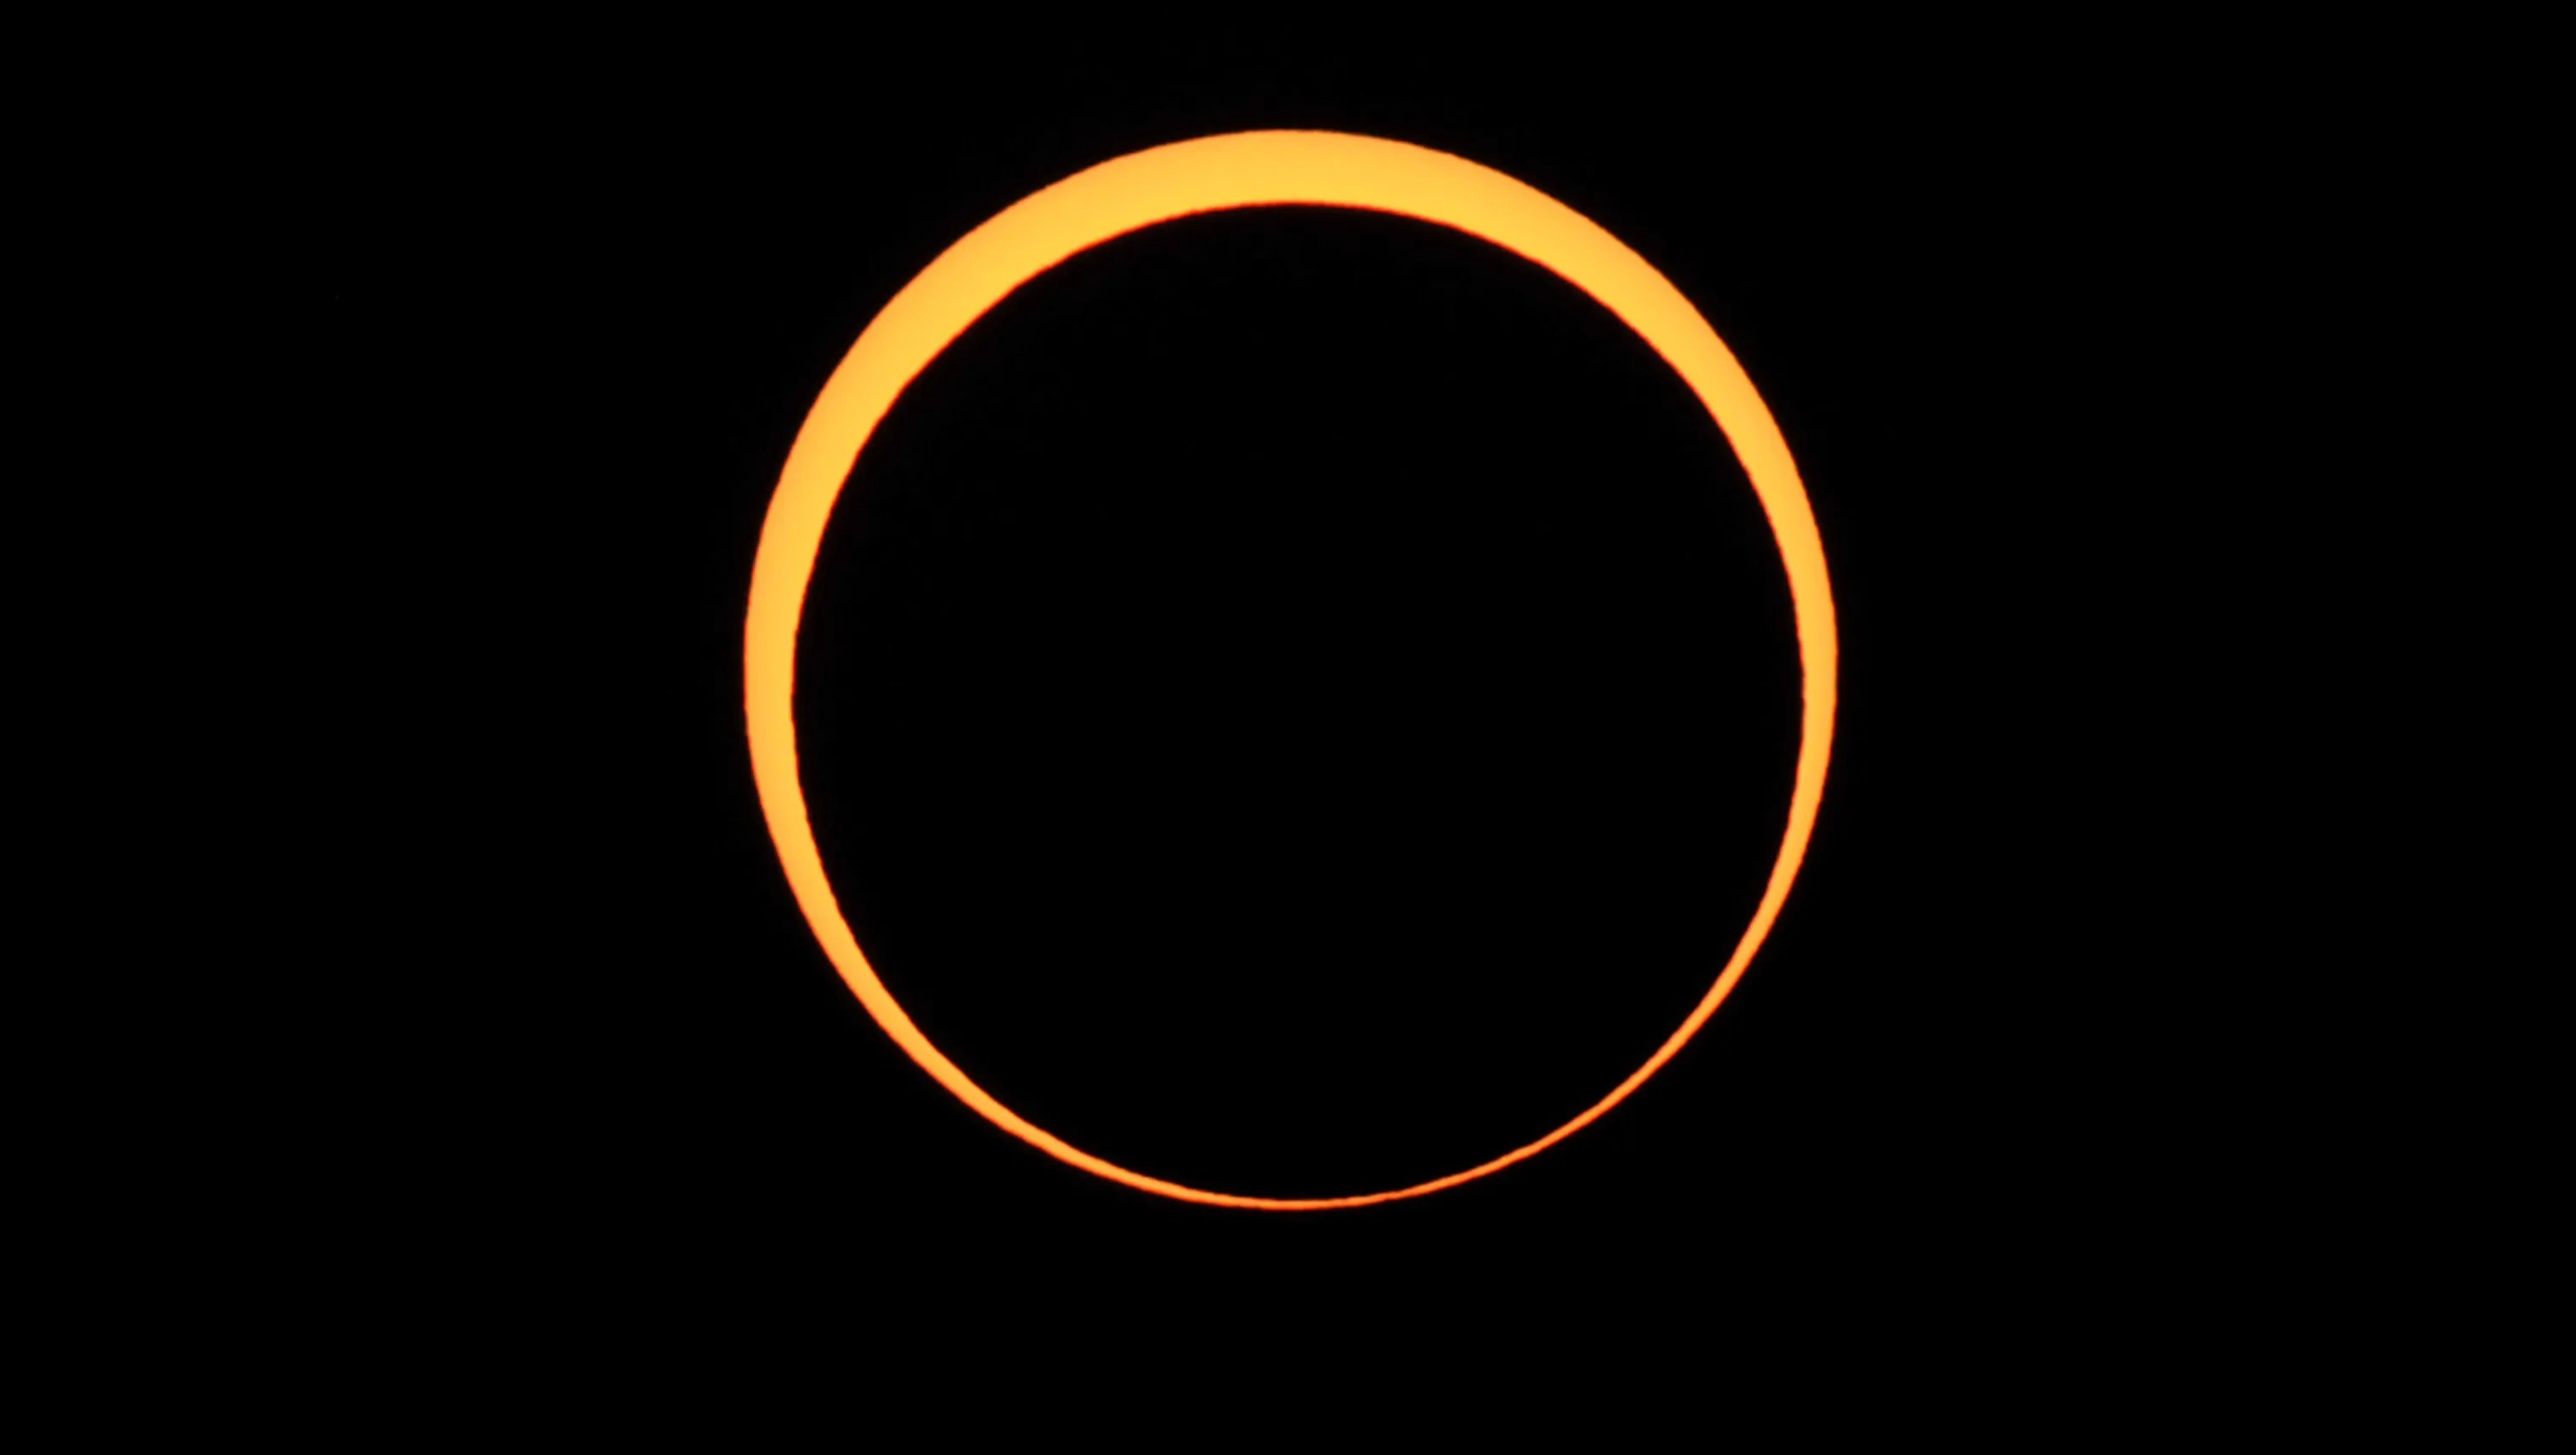 The moon appears to cover the sun during an annular eclipse of the sun on May 20, 2012, as seen from Chaco Culture National Historical Park in Nageezi, Ariz.